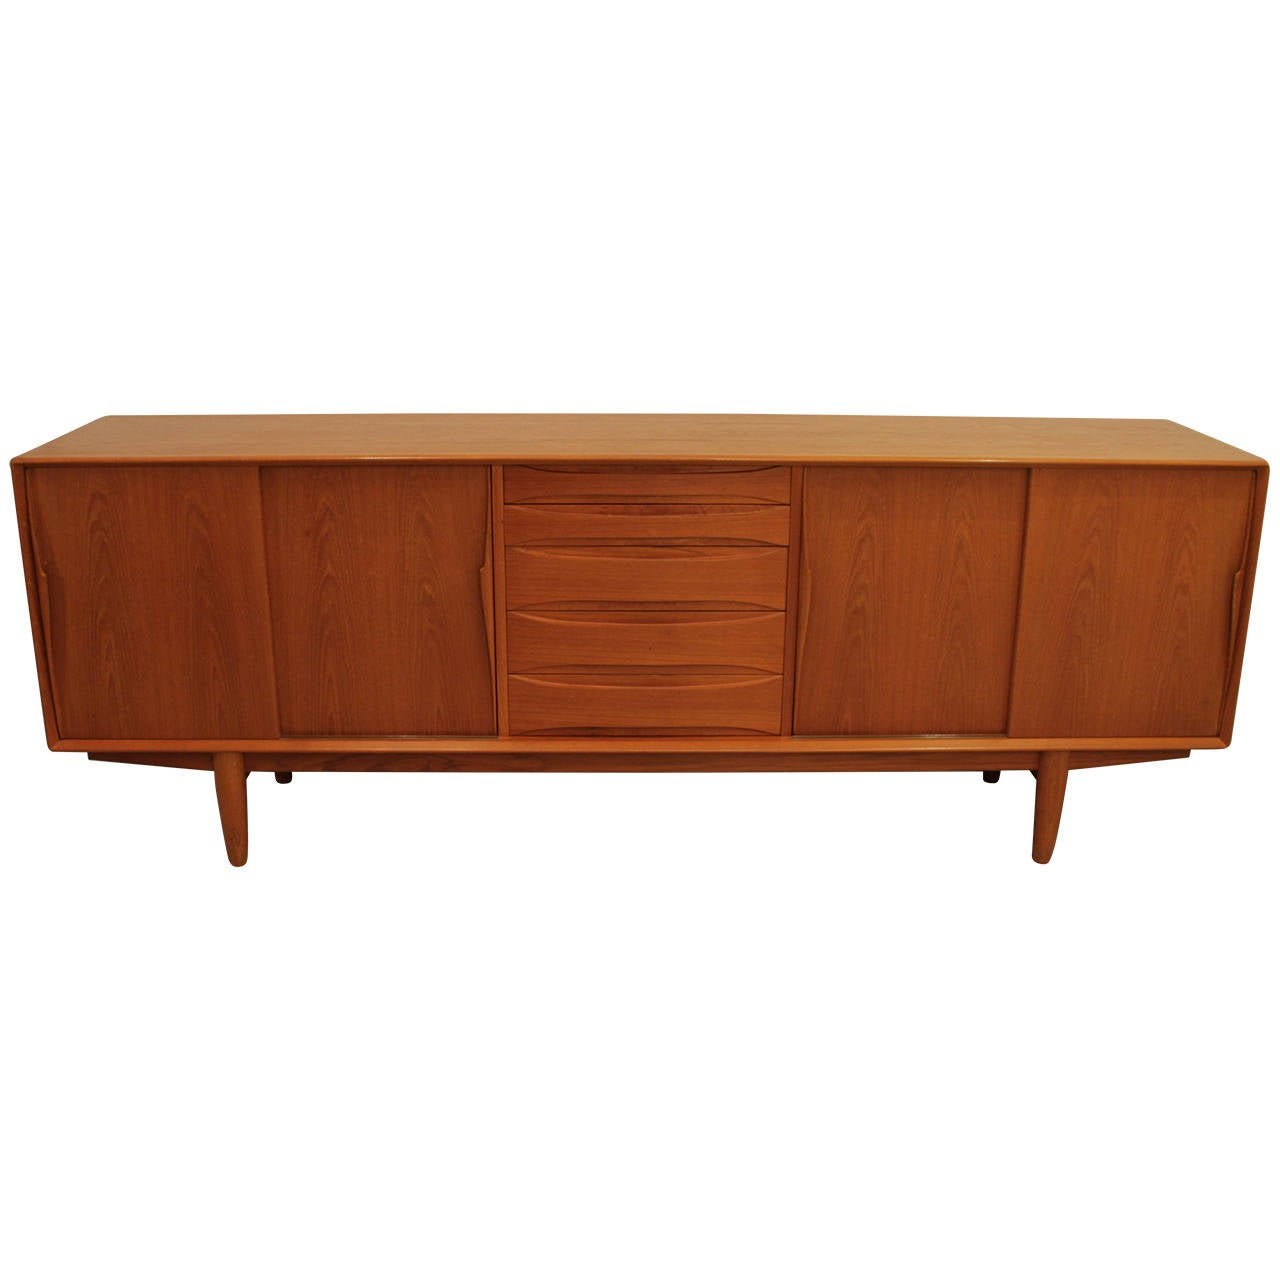 arne vodder teak sideboard at 1stdibs. Black Bedroom Furniture Sets. Home Design Ideas